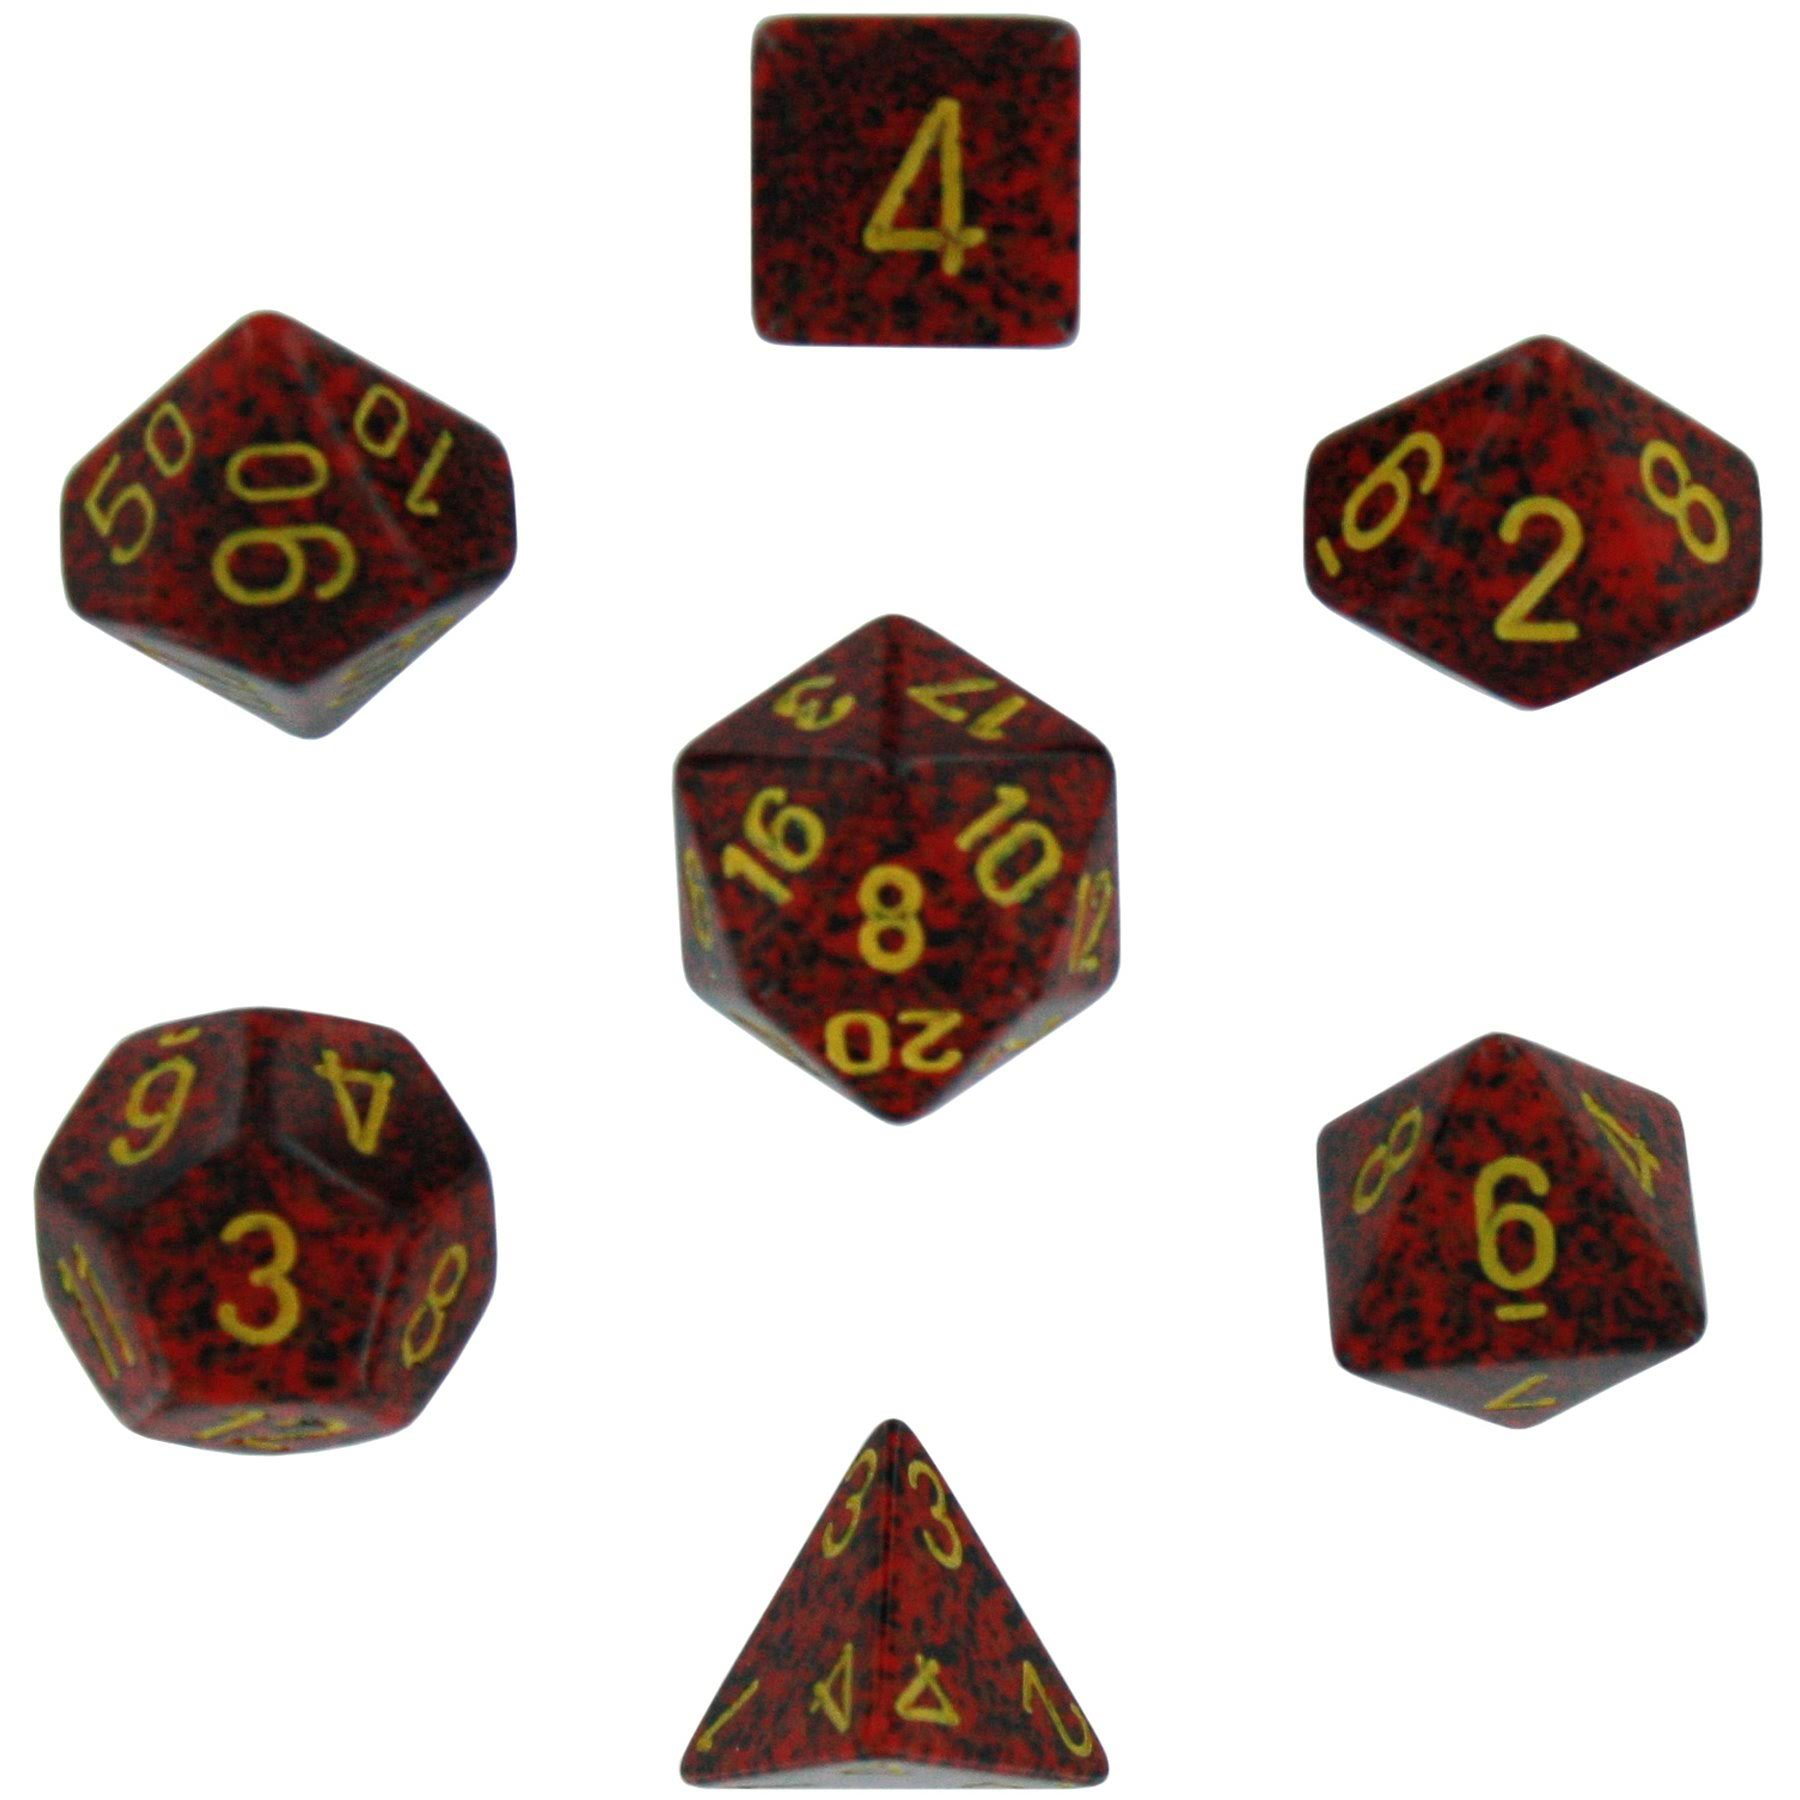 Chessex: Polyhedral Dice Set - Speckled Mercury (7)